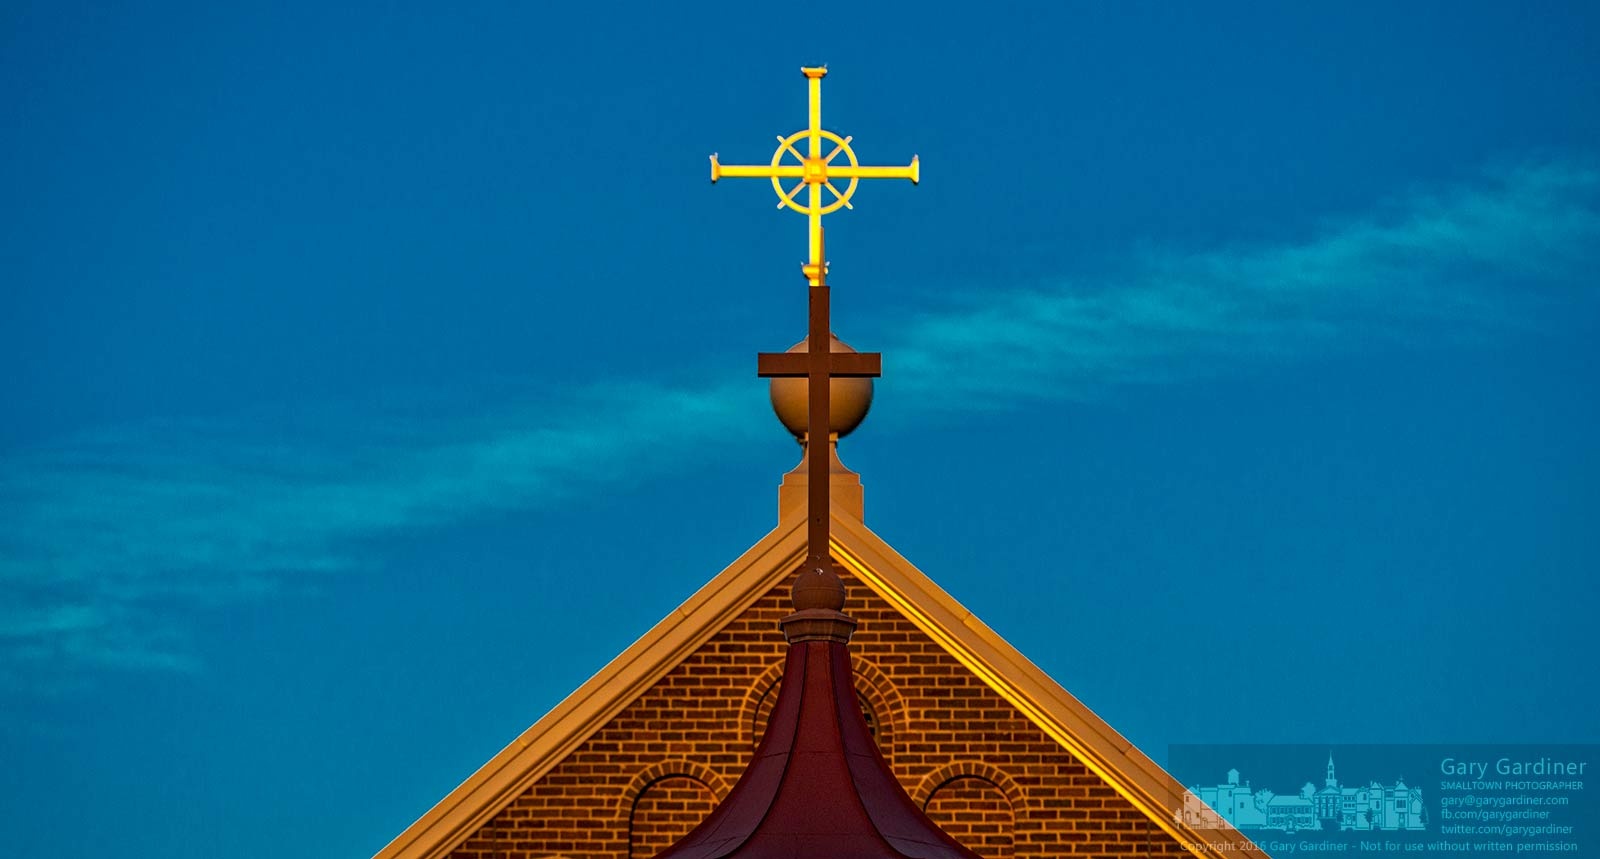 The rising sun slowly brightens the cross at the top of St. Paul Catholic Church. My Final Photo for February 28, 2016.